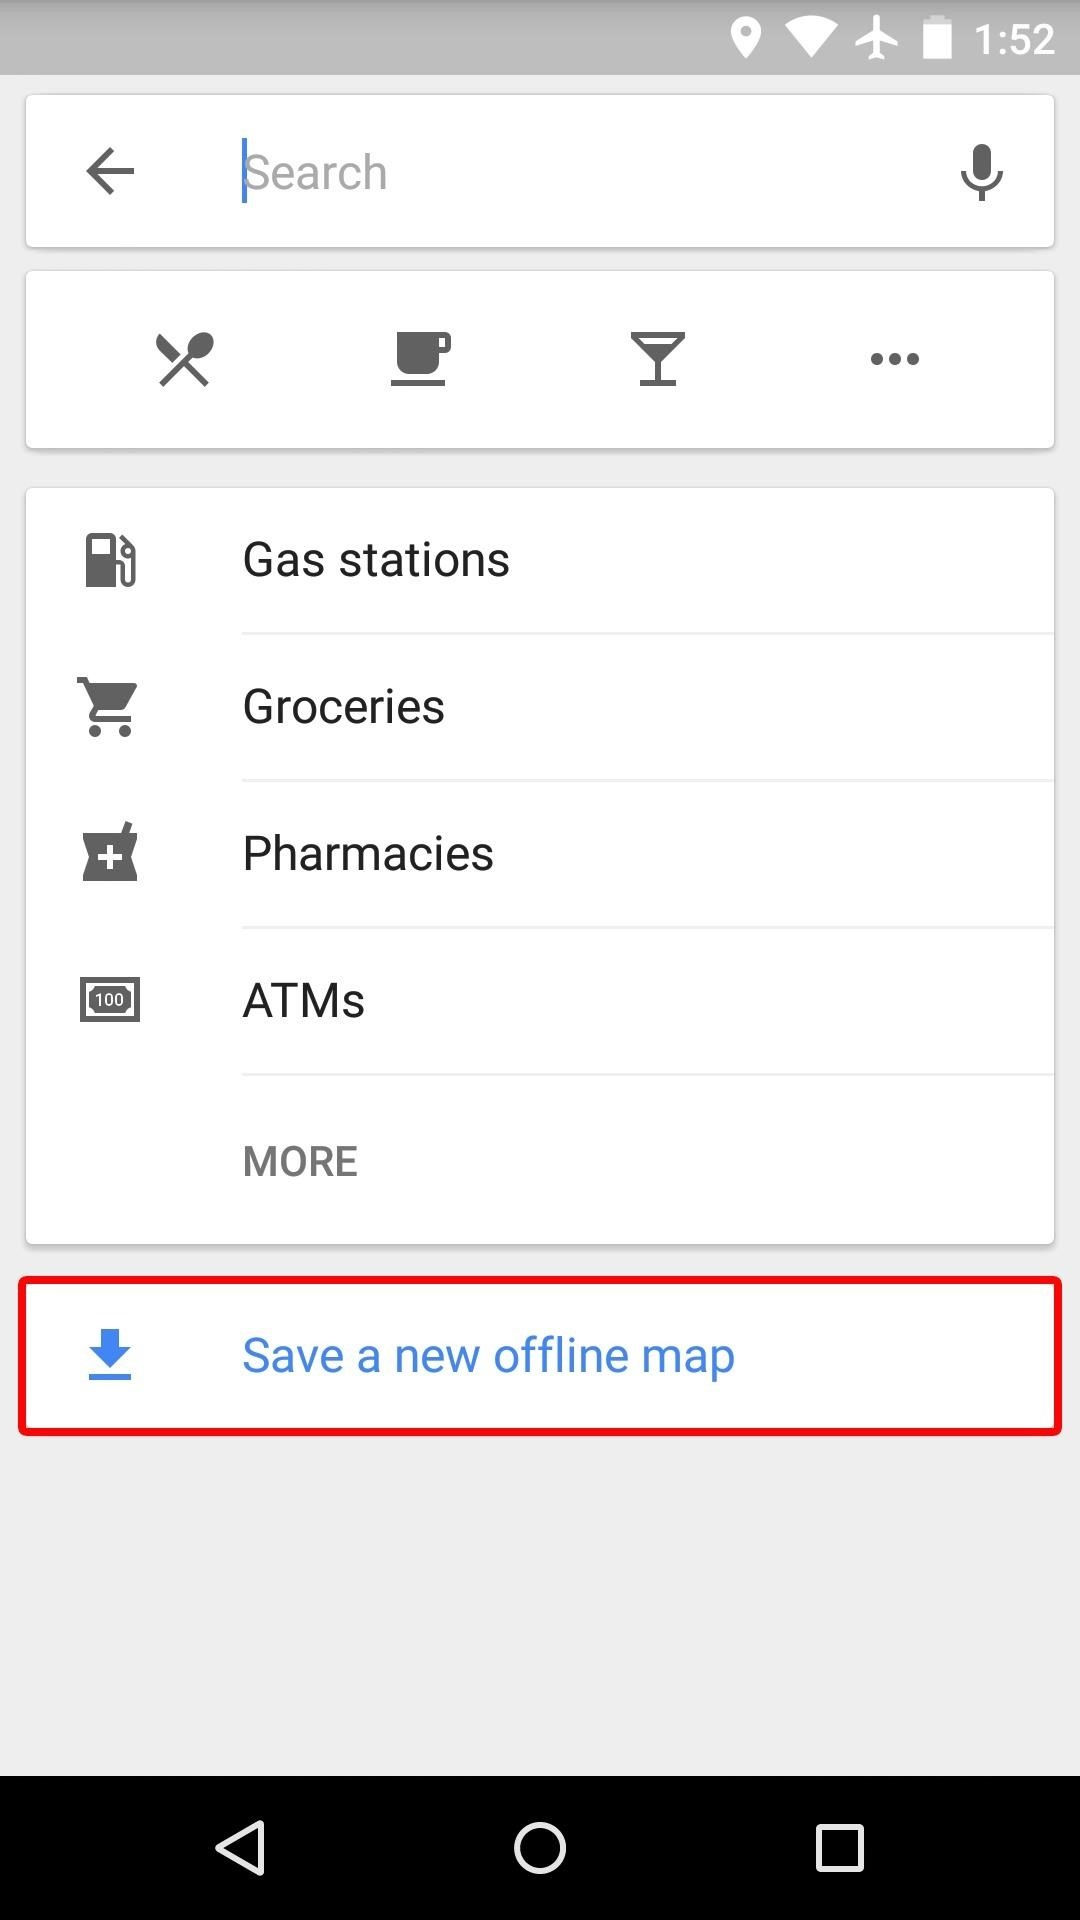 along with maps you may want to download music and videos by using the offline playback options in app like chrome google play music spotify